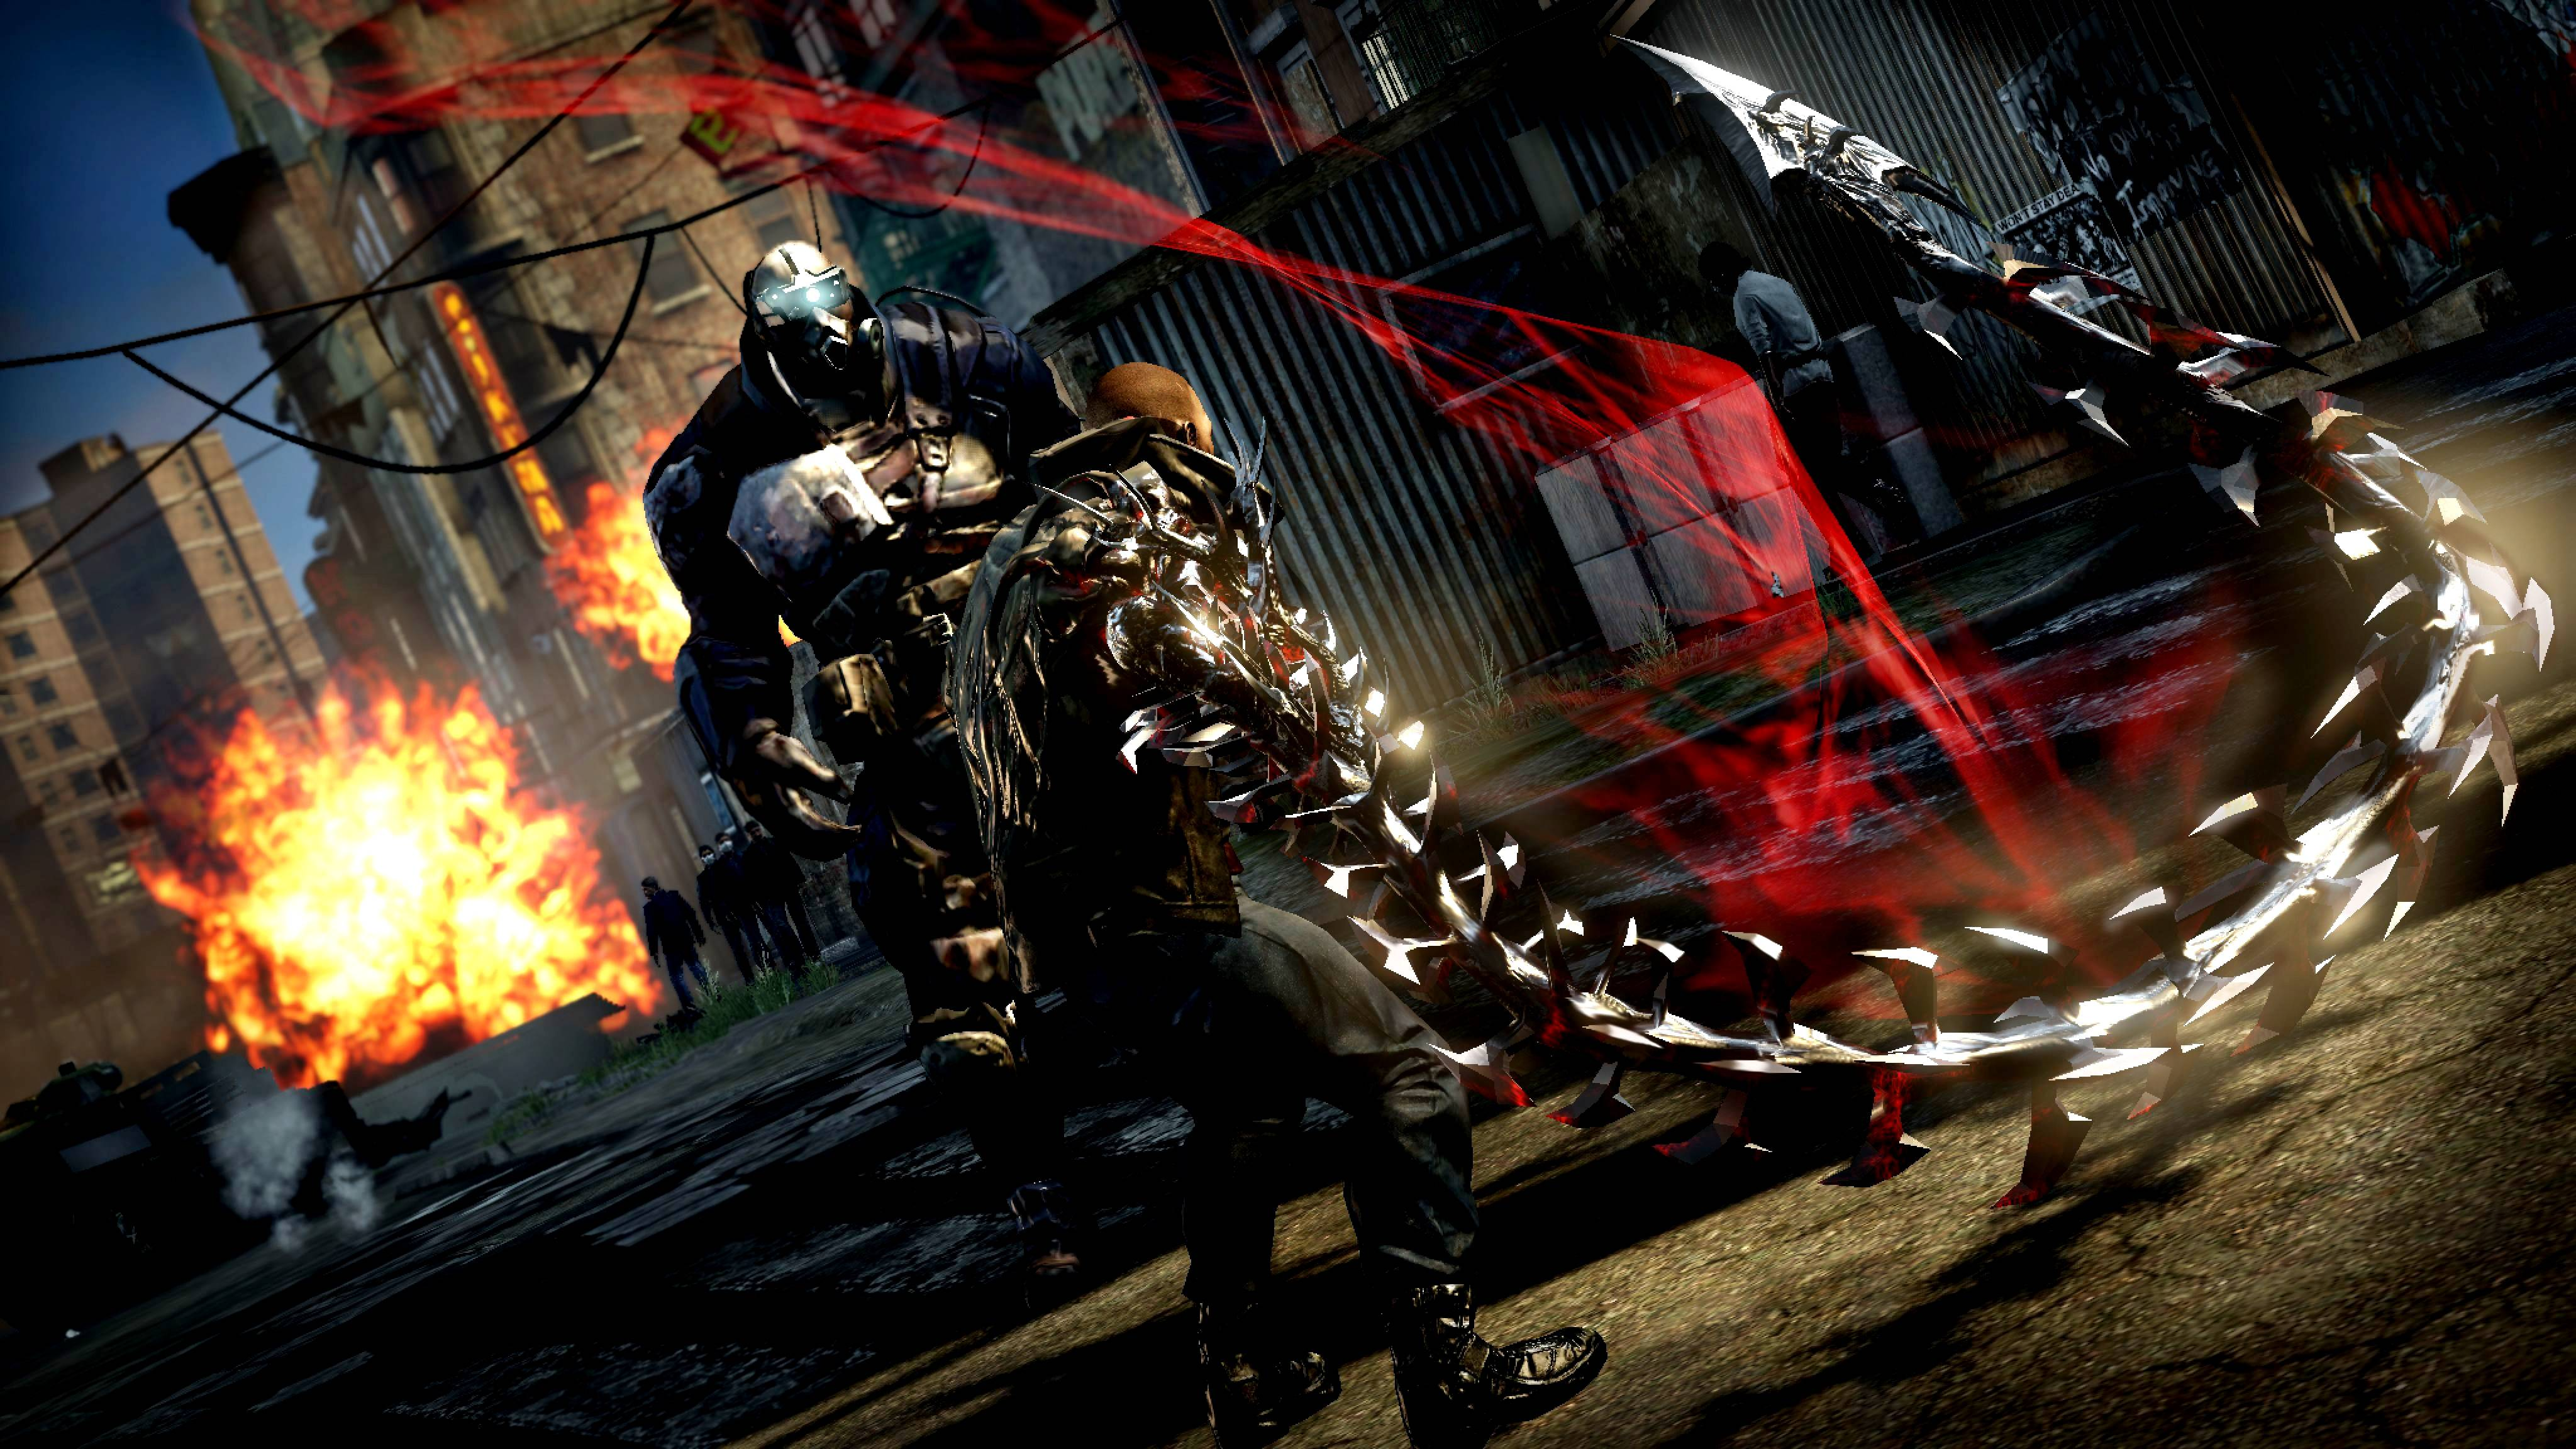 Wallpapers For Prototype 2 Wallpaper Hd 1080p 4096x2304